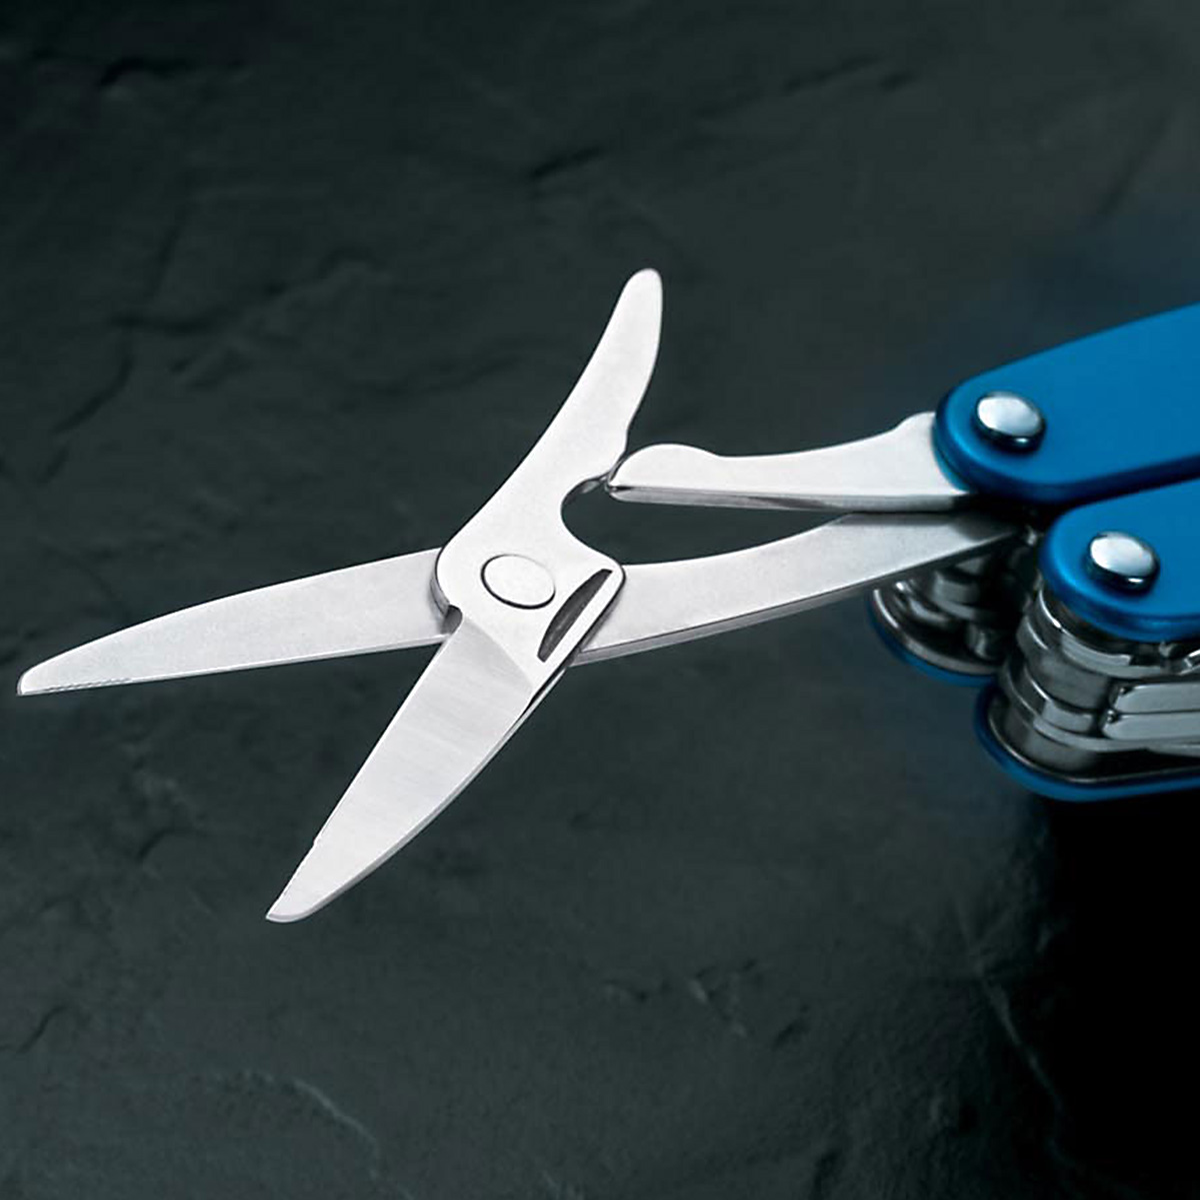 Juice Cs4 Scissors Blue